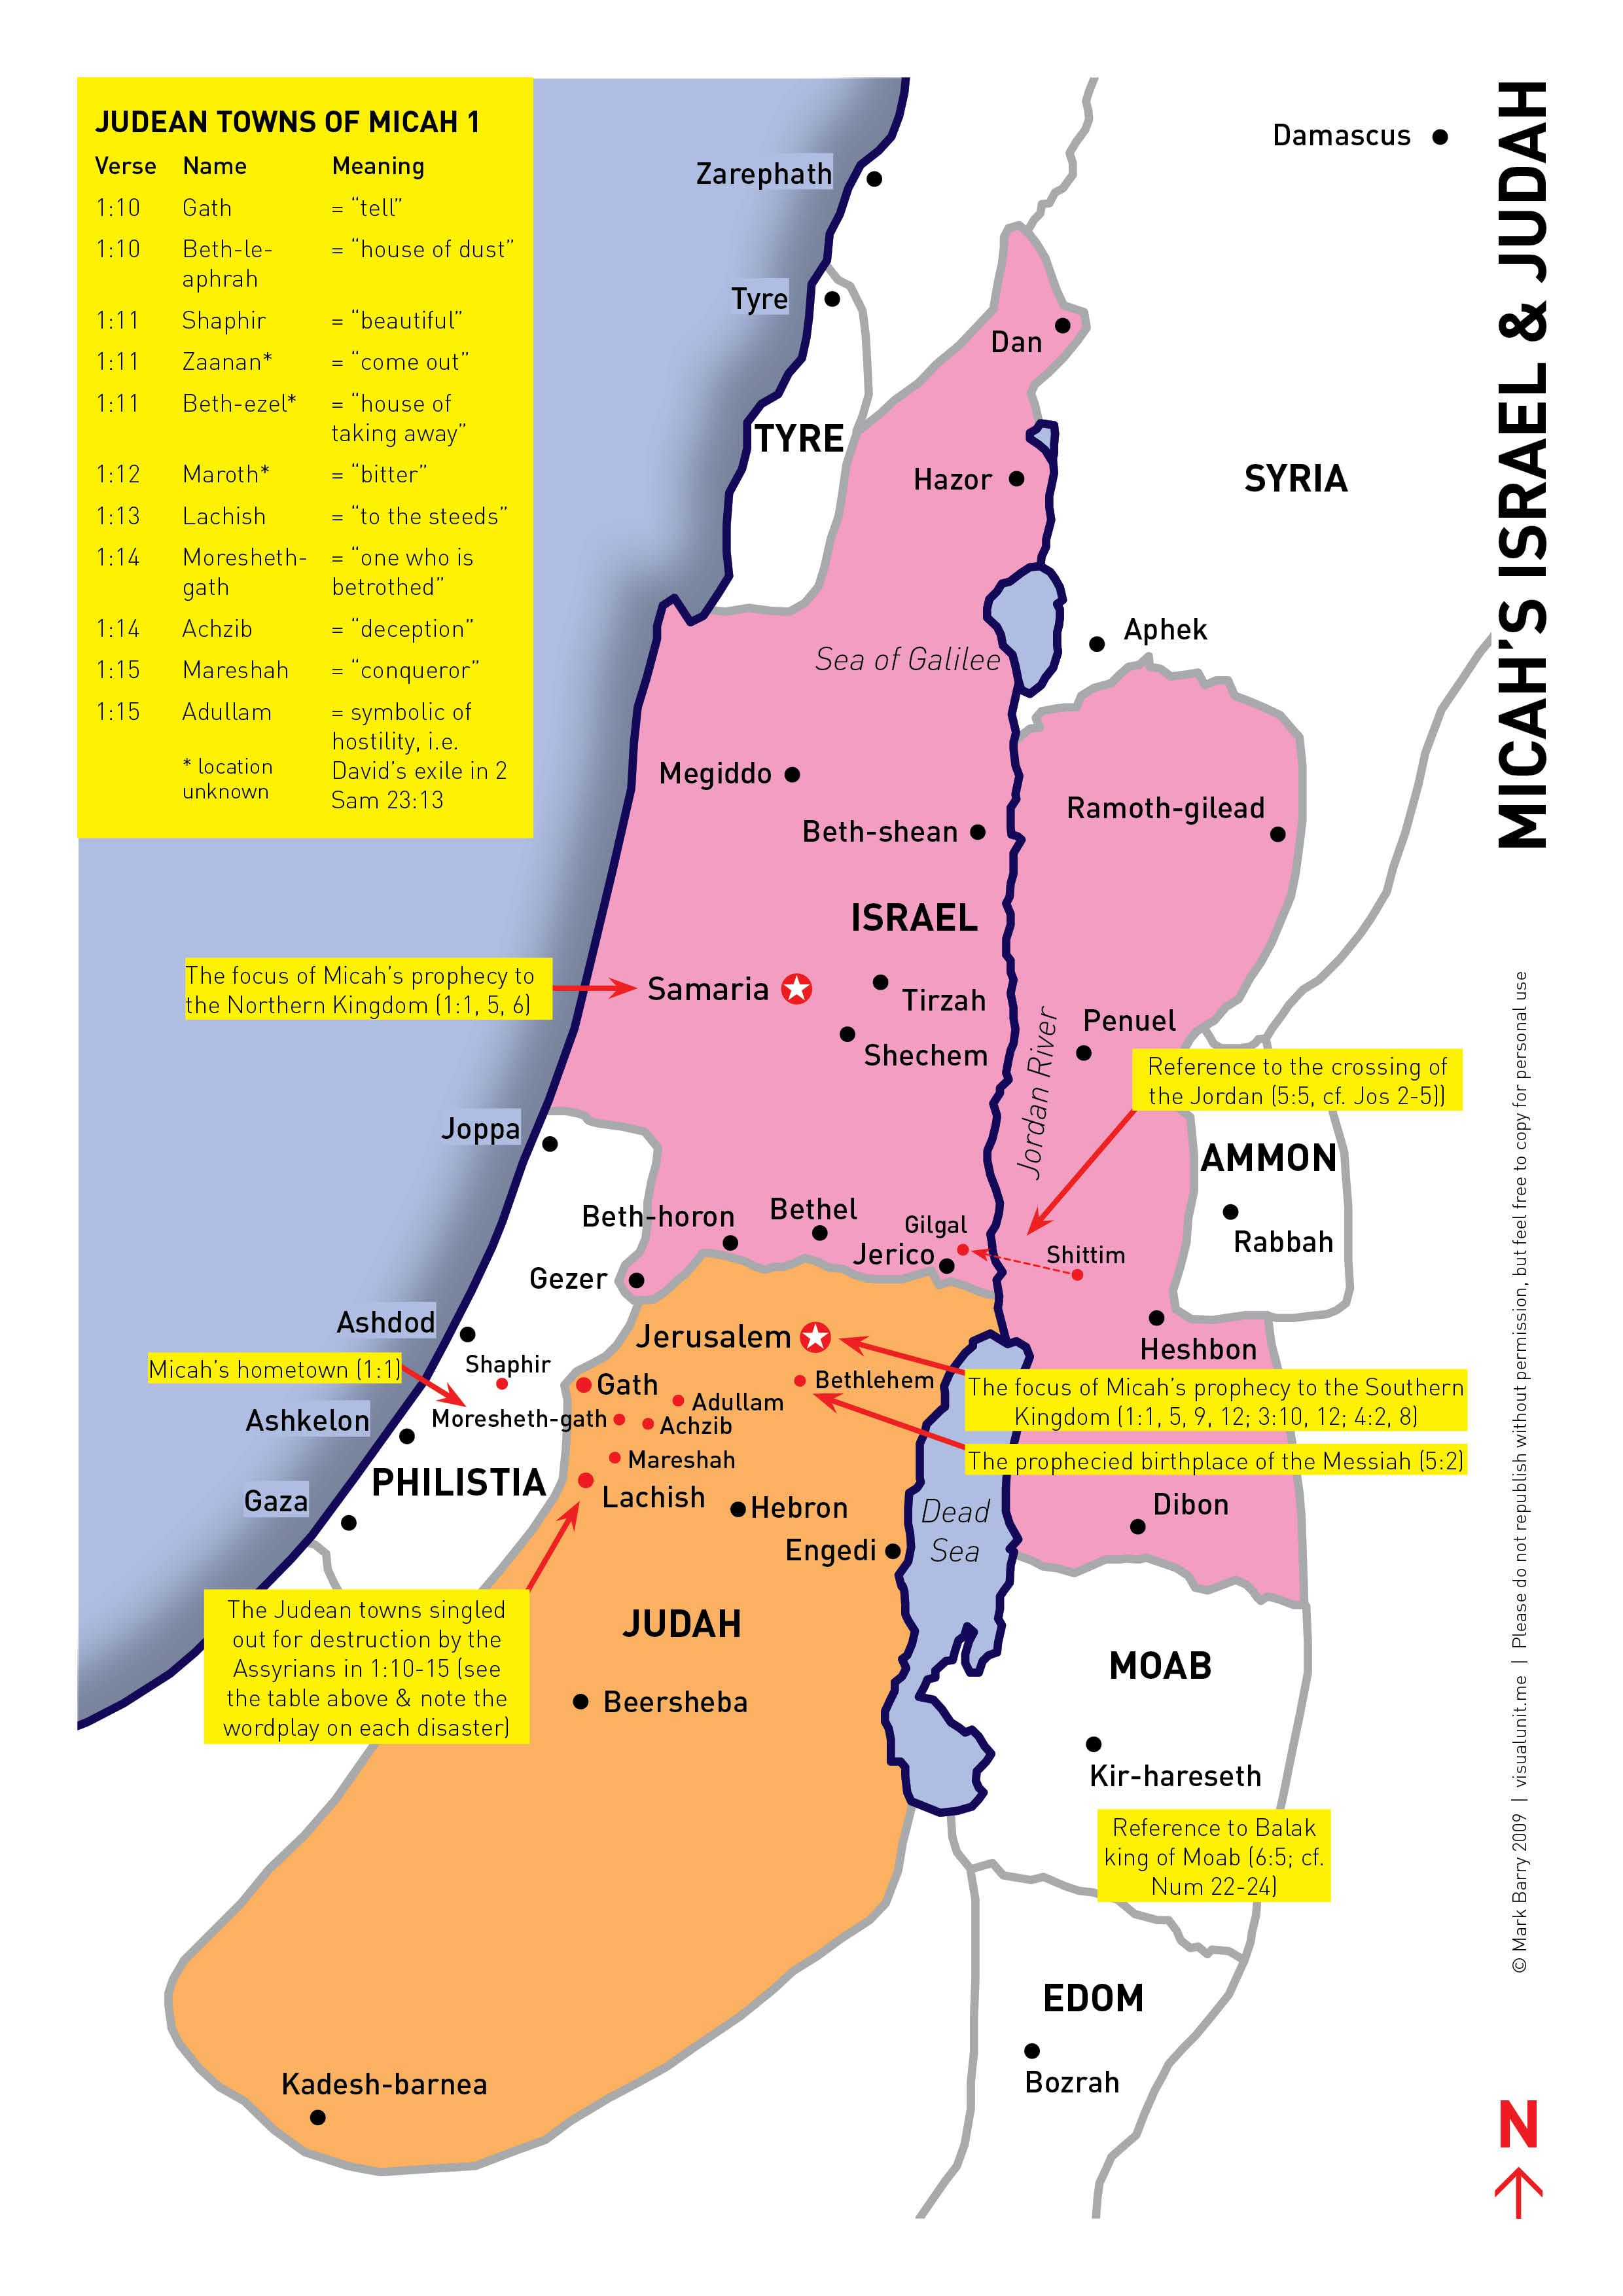 A Map Of Ancient Israel And Judah With References To The